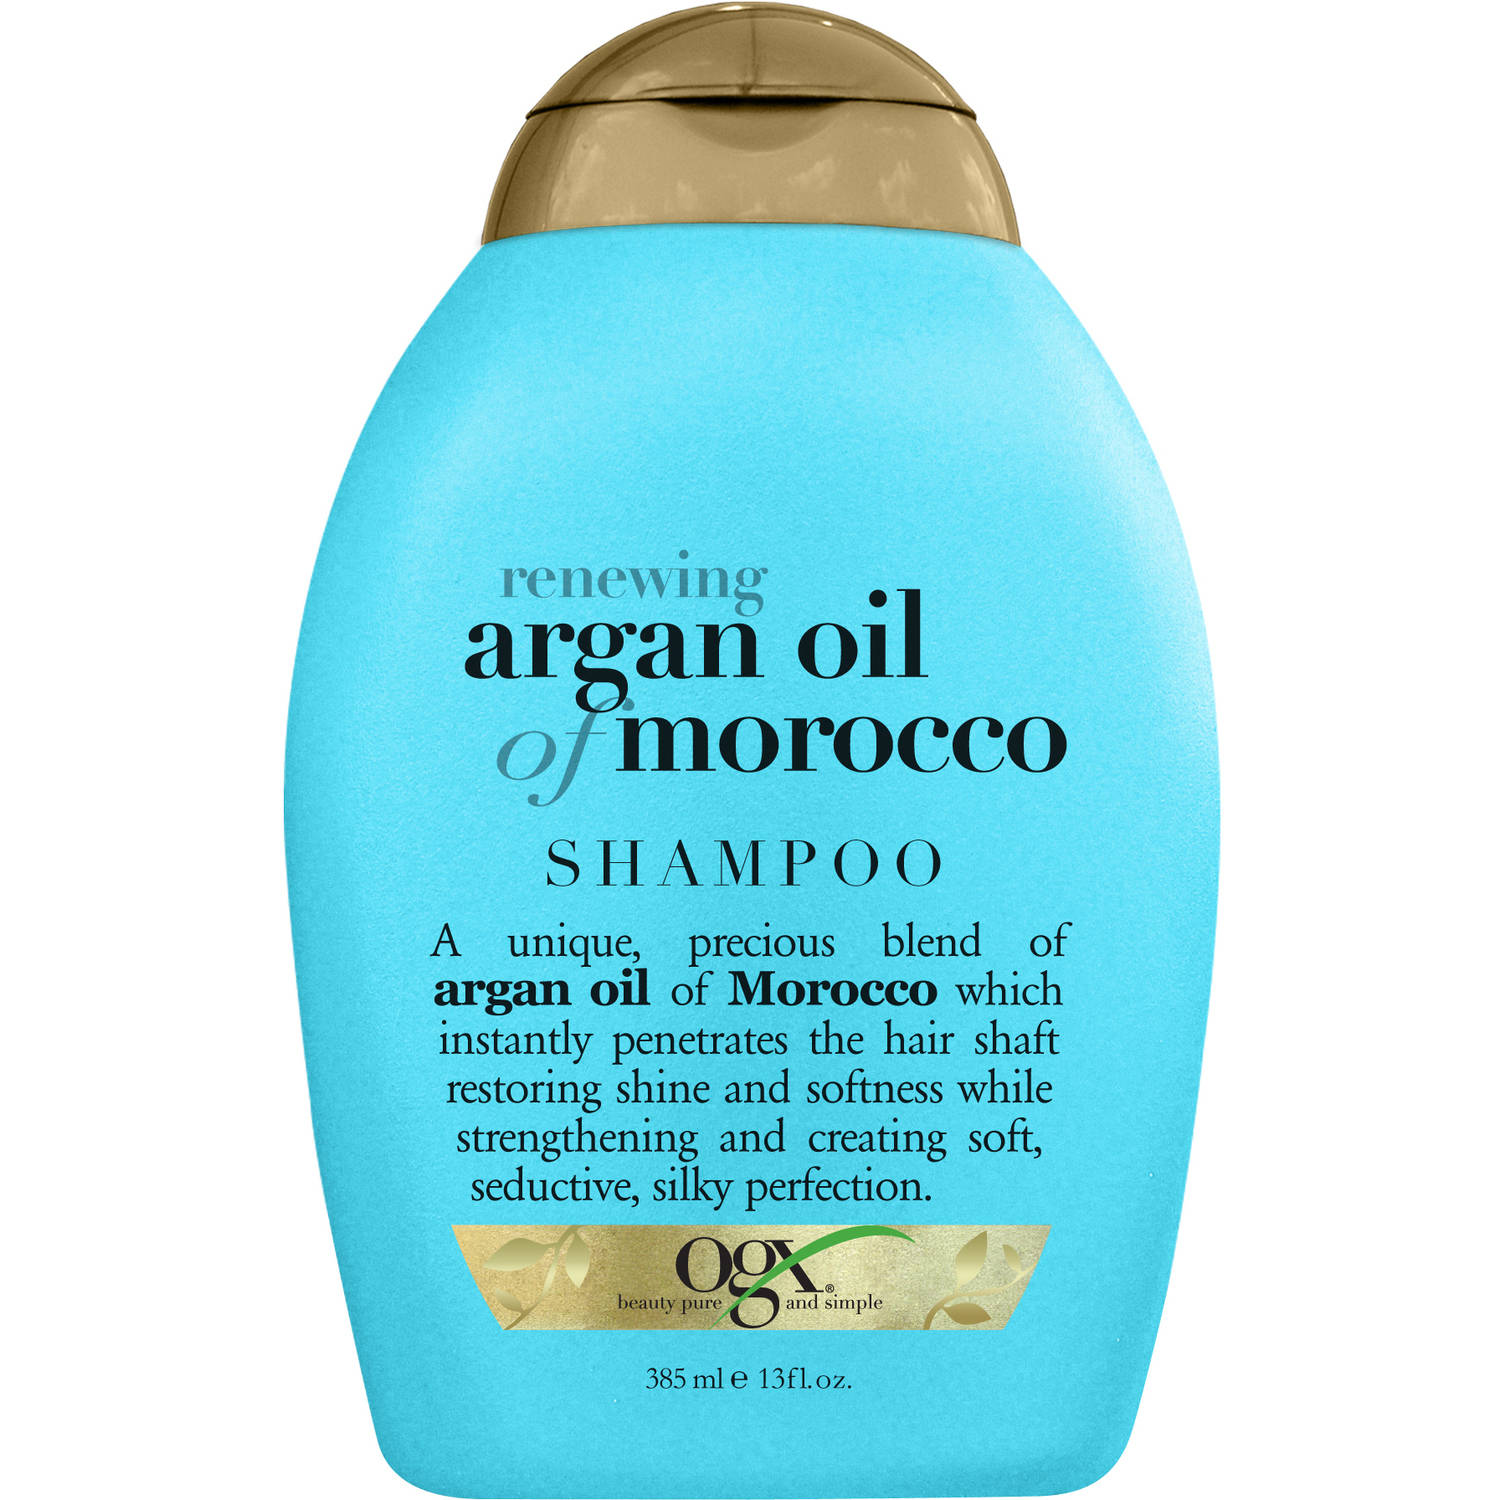 OGX Renewing Moroccan Argan Oil Shampoo, 13 oz